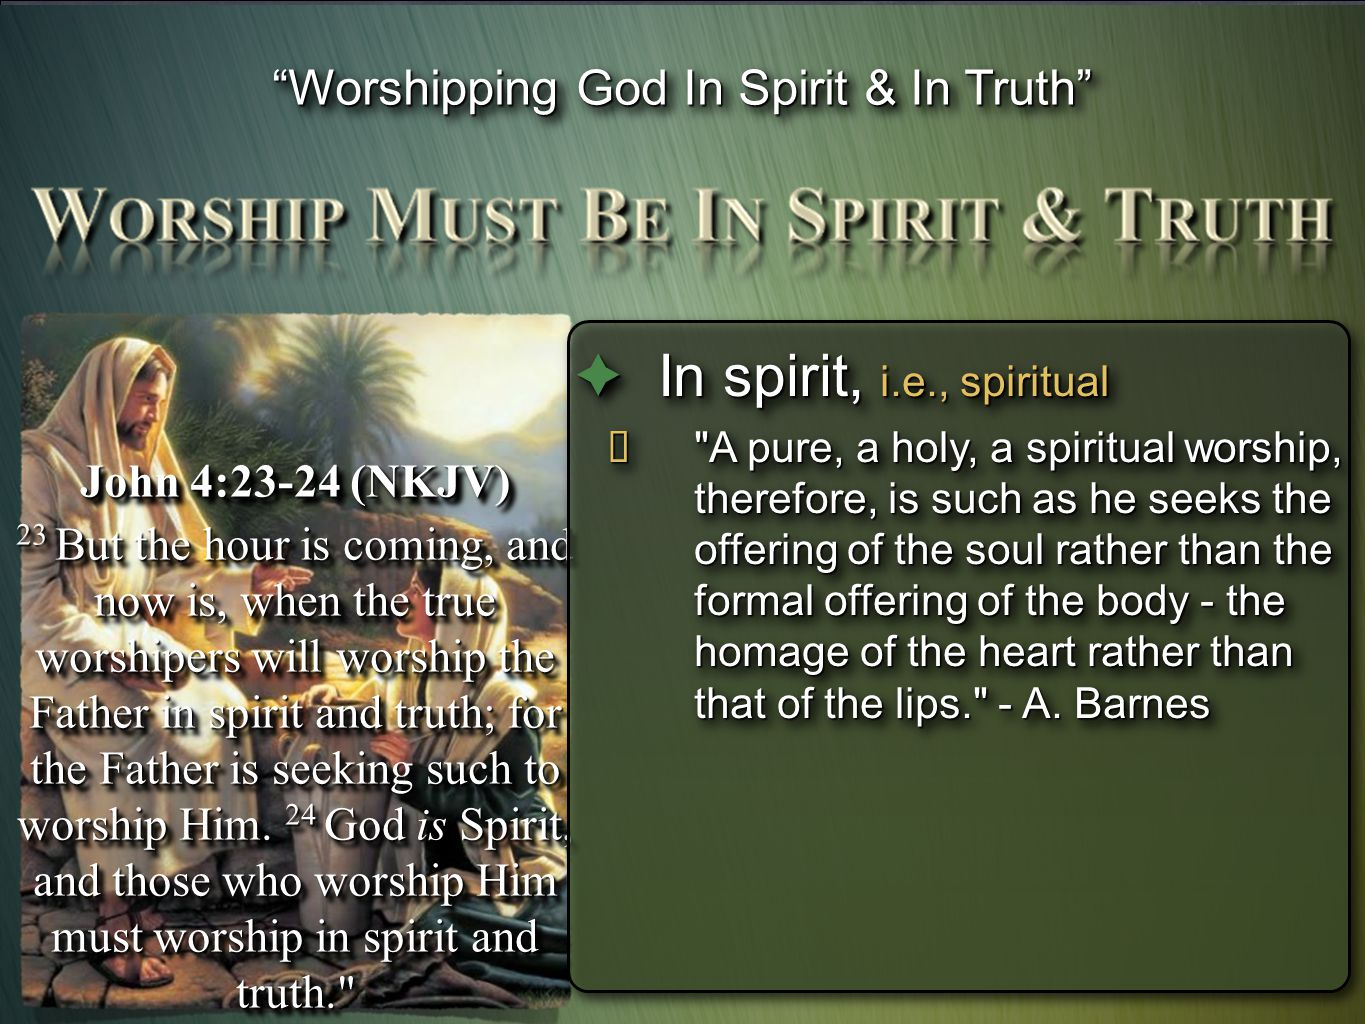 """Worshipping God In Spirit & In Truth"" John 4:23-24 (NKJV) 23 But the hour is coming, and now is, when the true worshipers will worship the Father in"